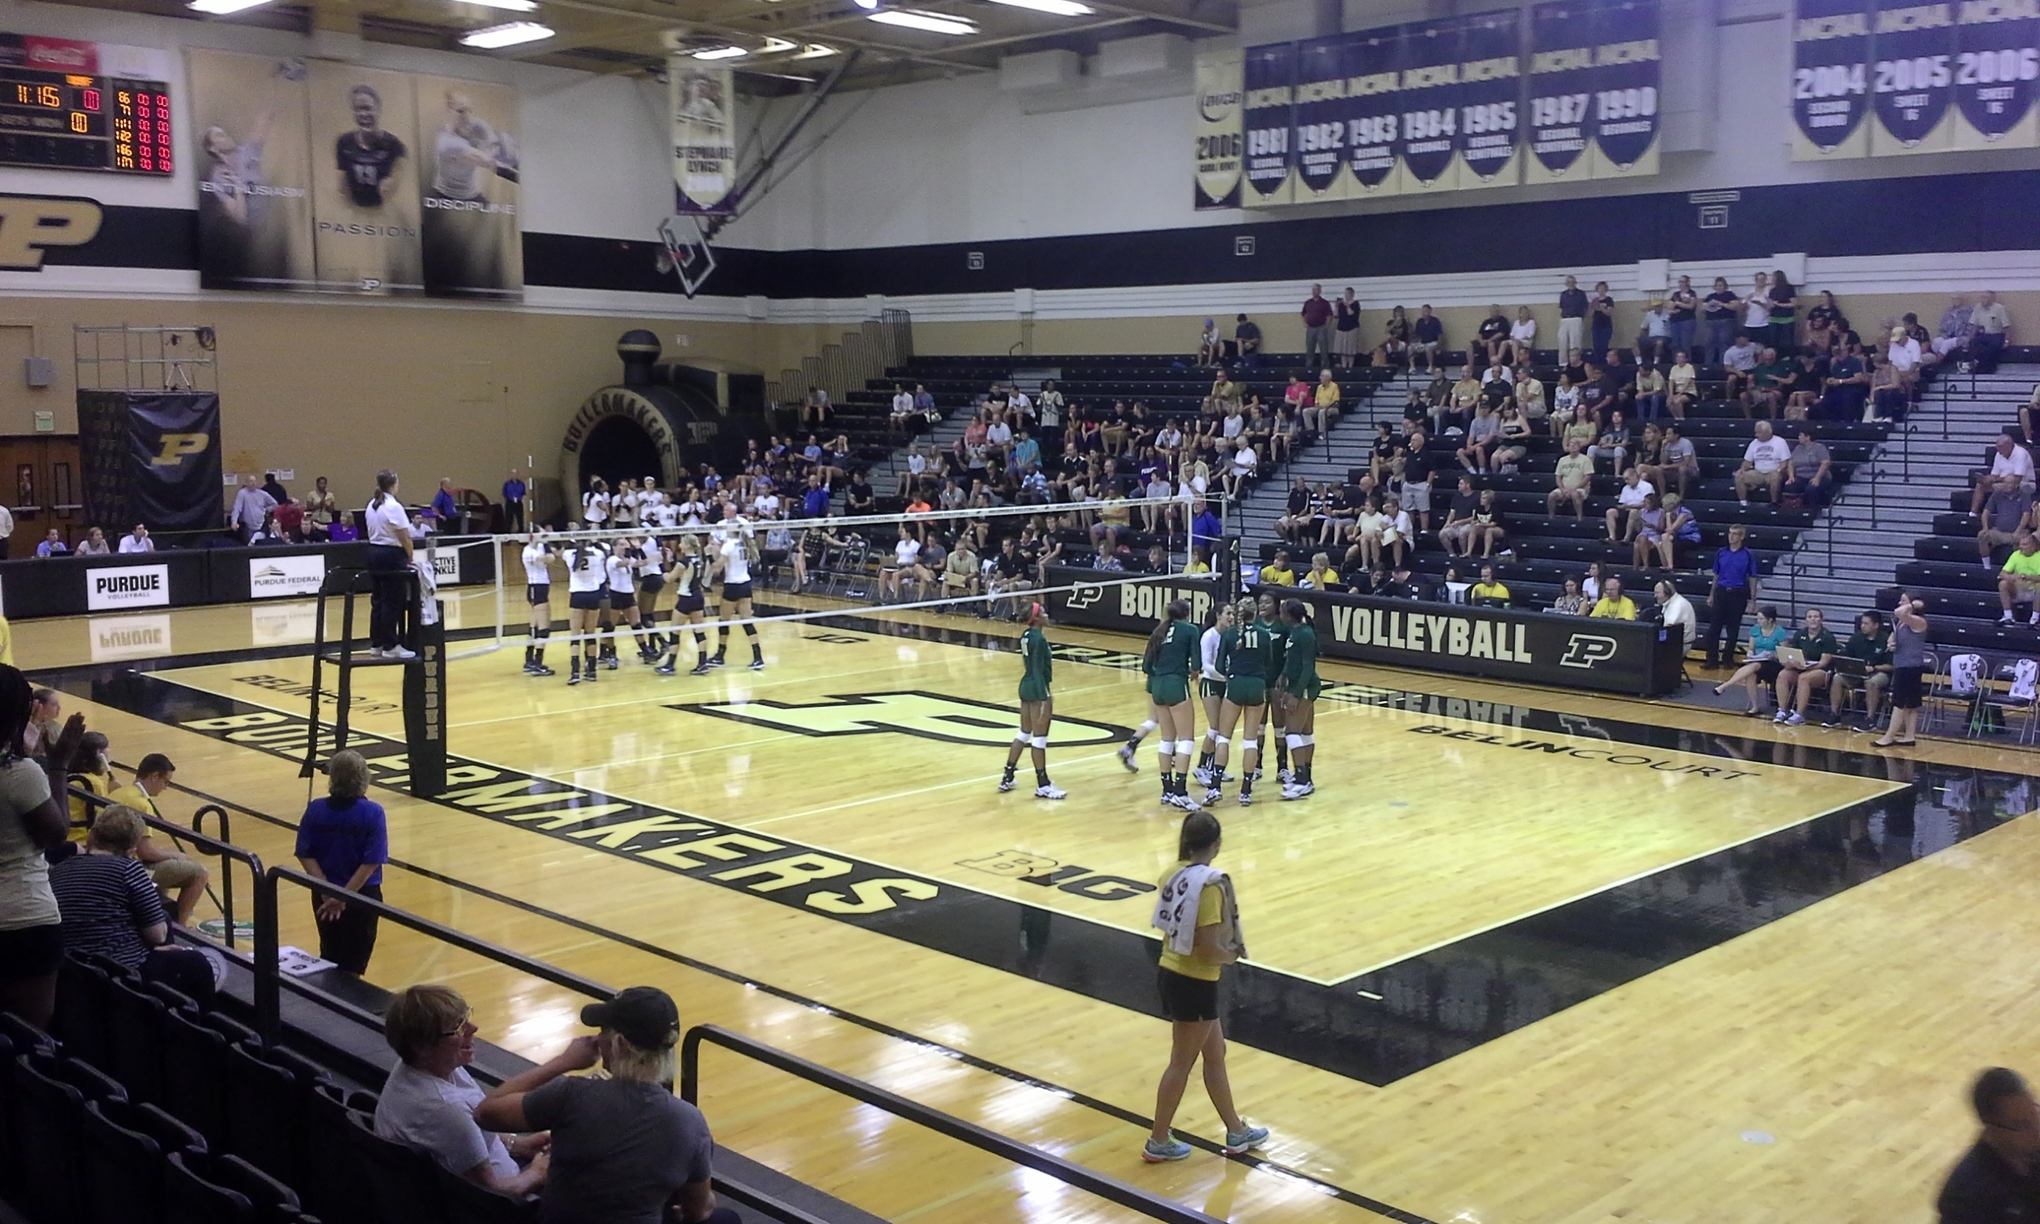 Purdue Volleyball vs South Florida 2014